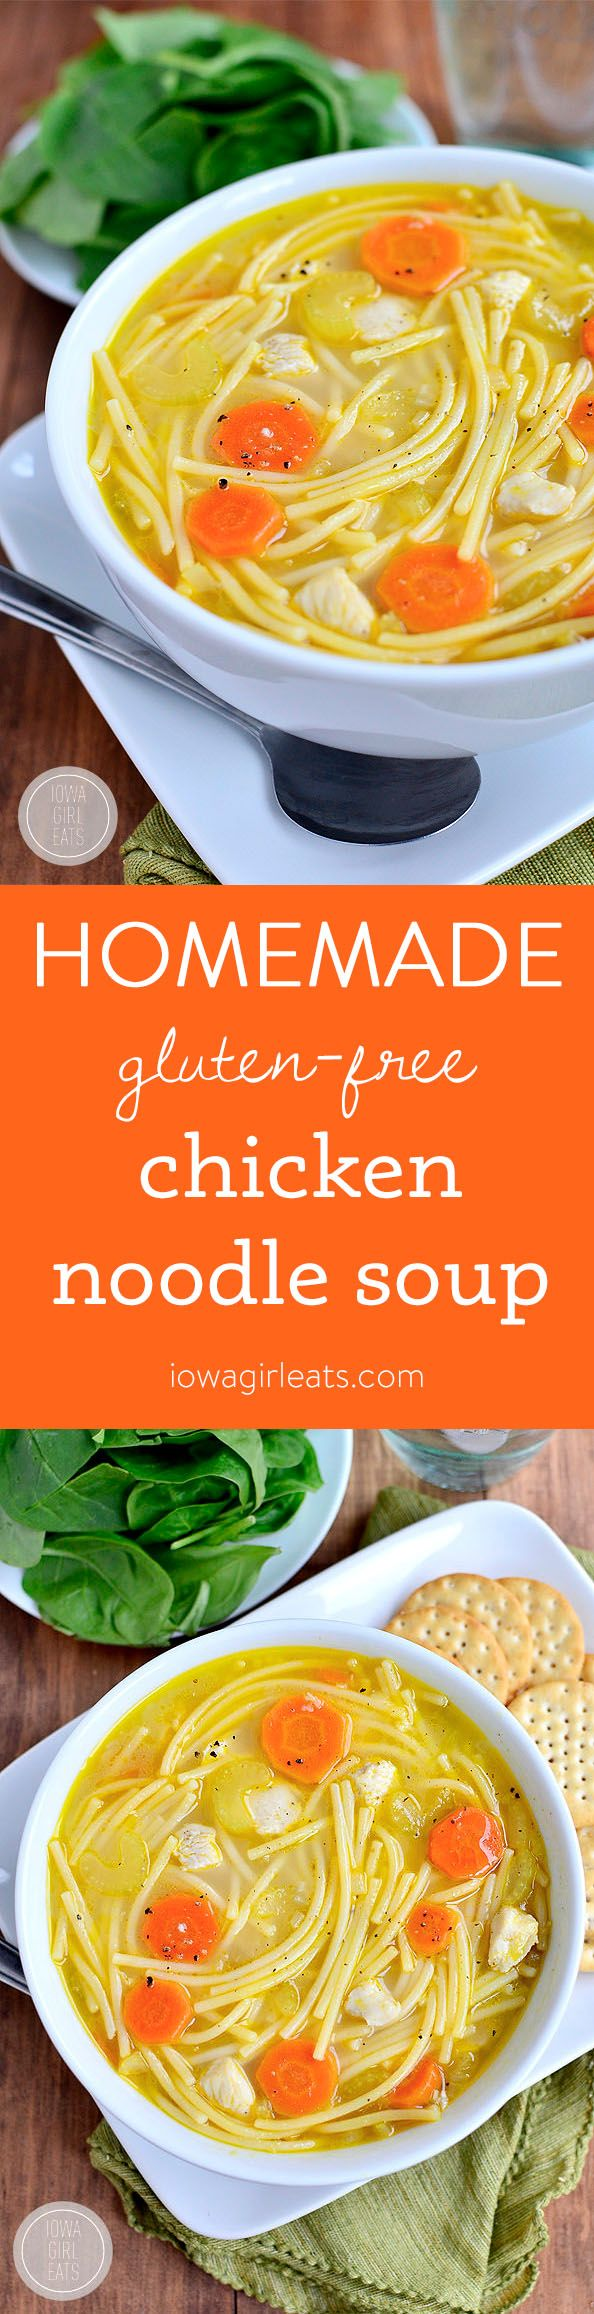 Gluten-free Homemade Chicken Noodle Soup is ready in under 30 minutes and made…